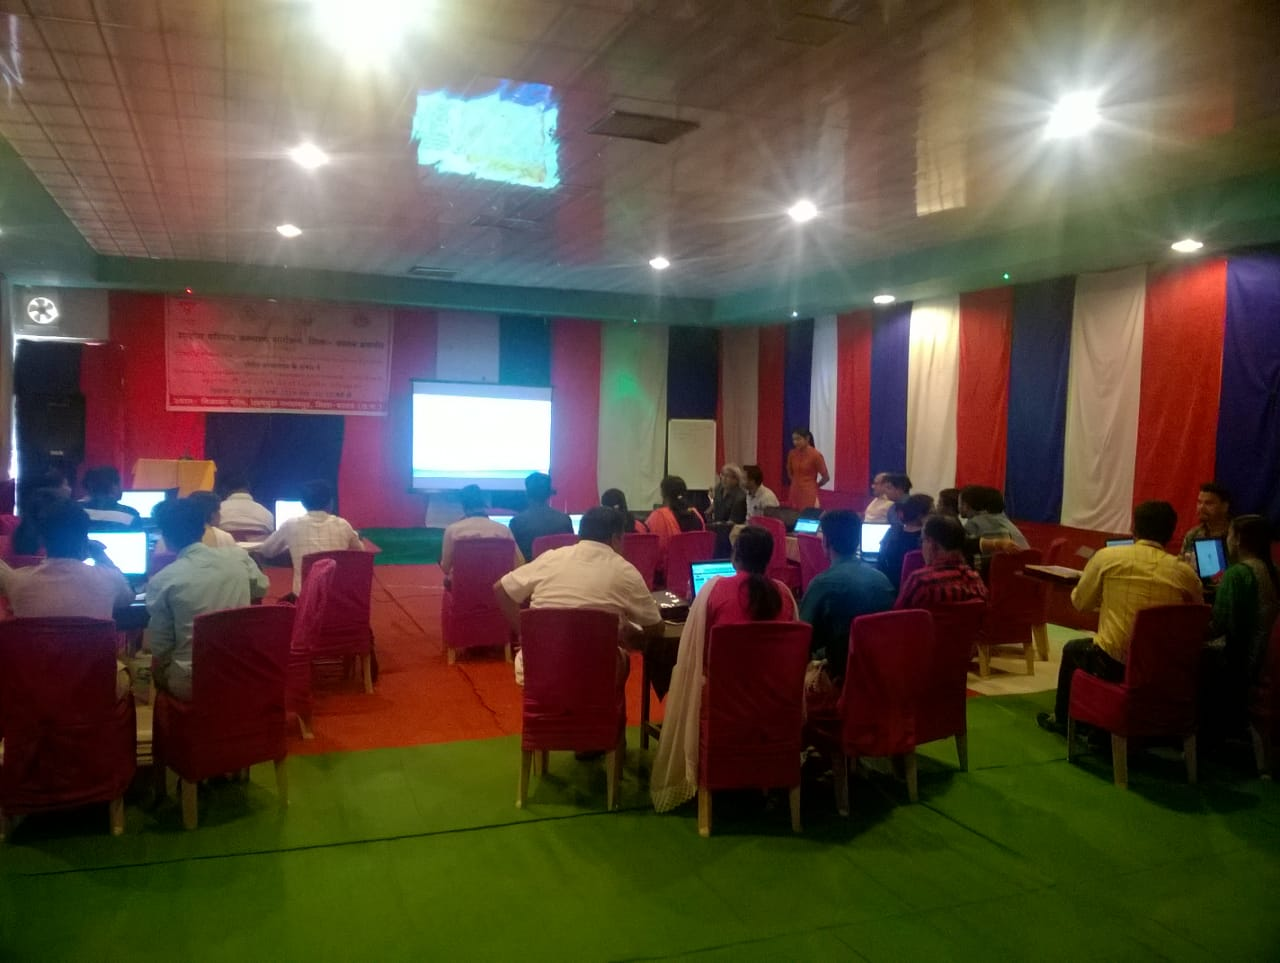 In Chhattisgarh, Bastar districts becomes the first one to organize training on FPLMIS. Streamlining country's supply chain a priority for the state!